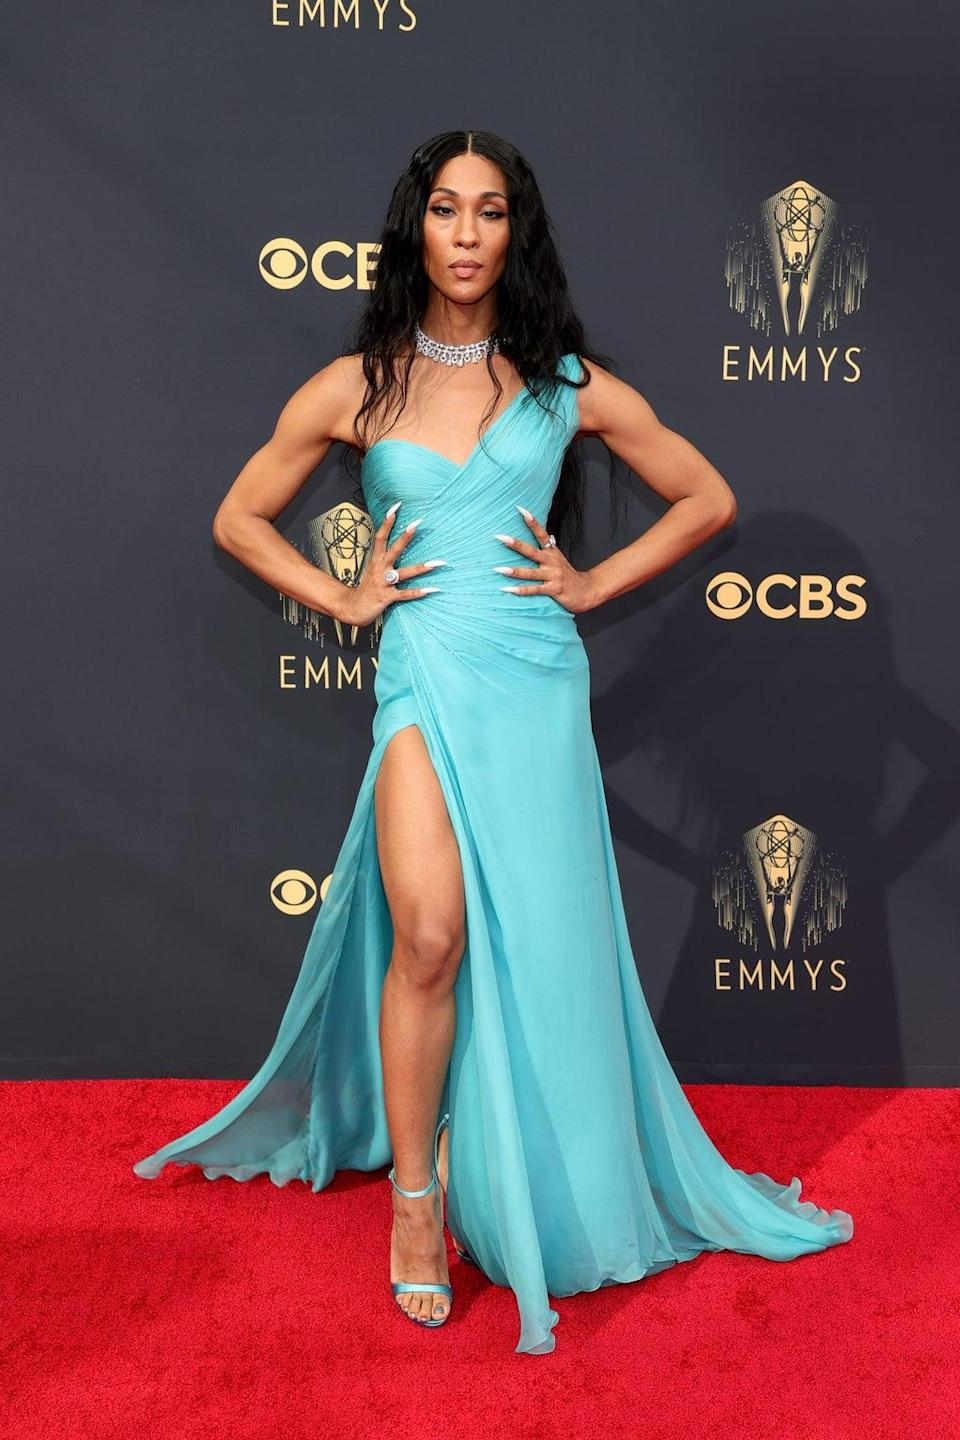 Mj Rodriguez at the 2021 Emmy Awards (Getty Images)